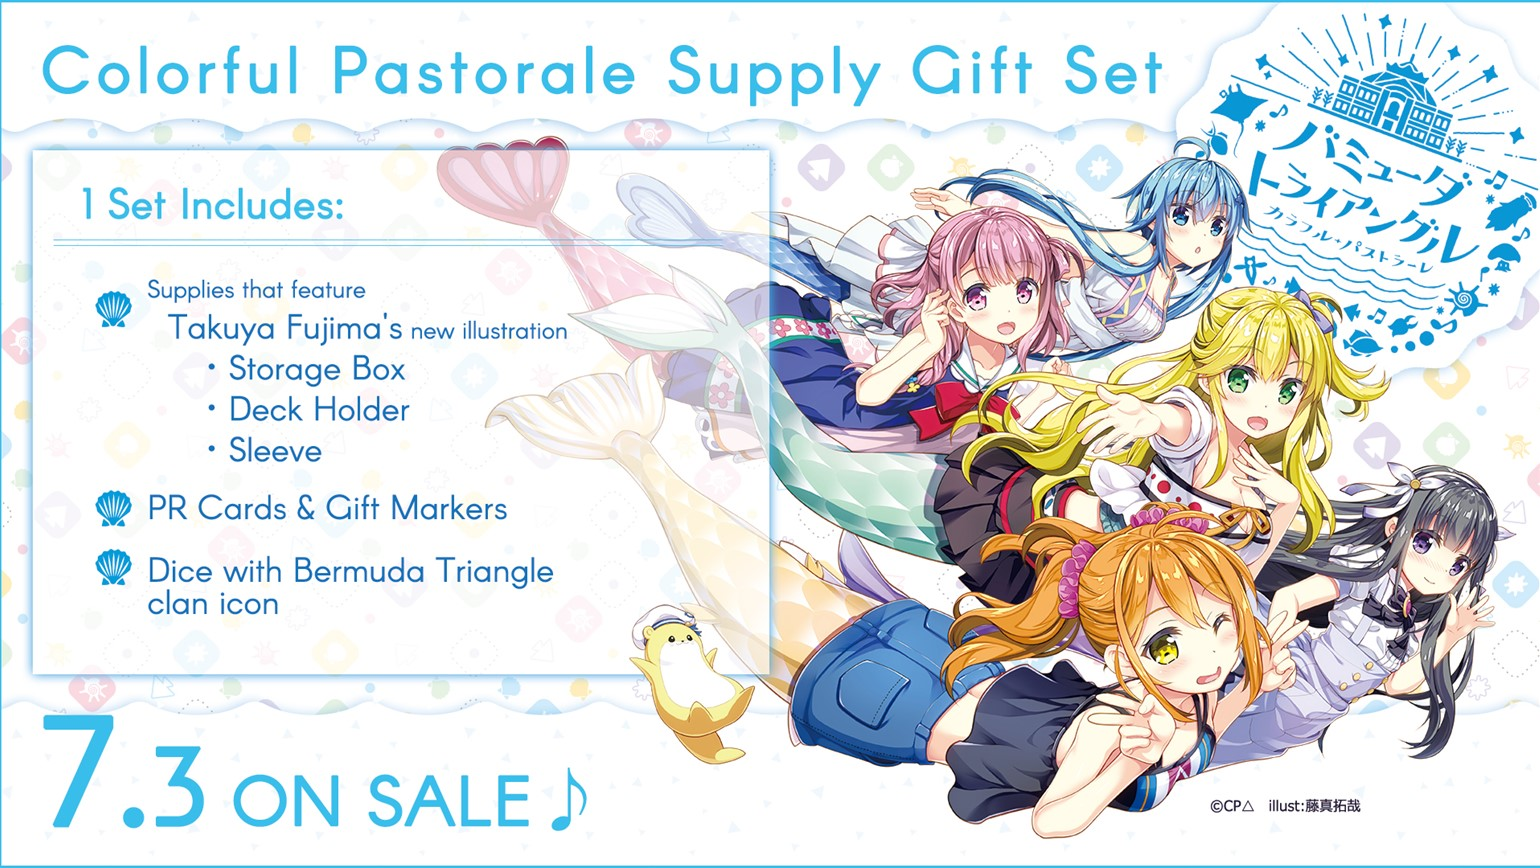 English Edition Cardfight!! Vanguard Special Series 02: Colorful Pastorale Supply Gift Set Coming to Stores on July 3rd